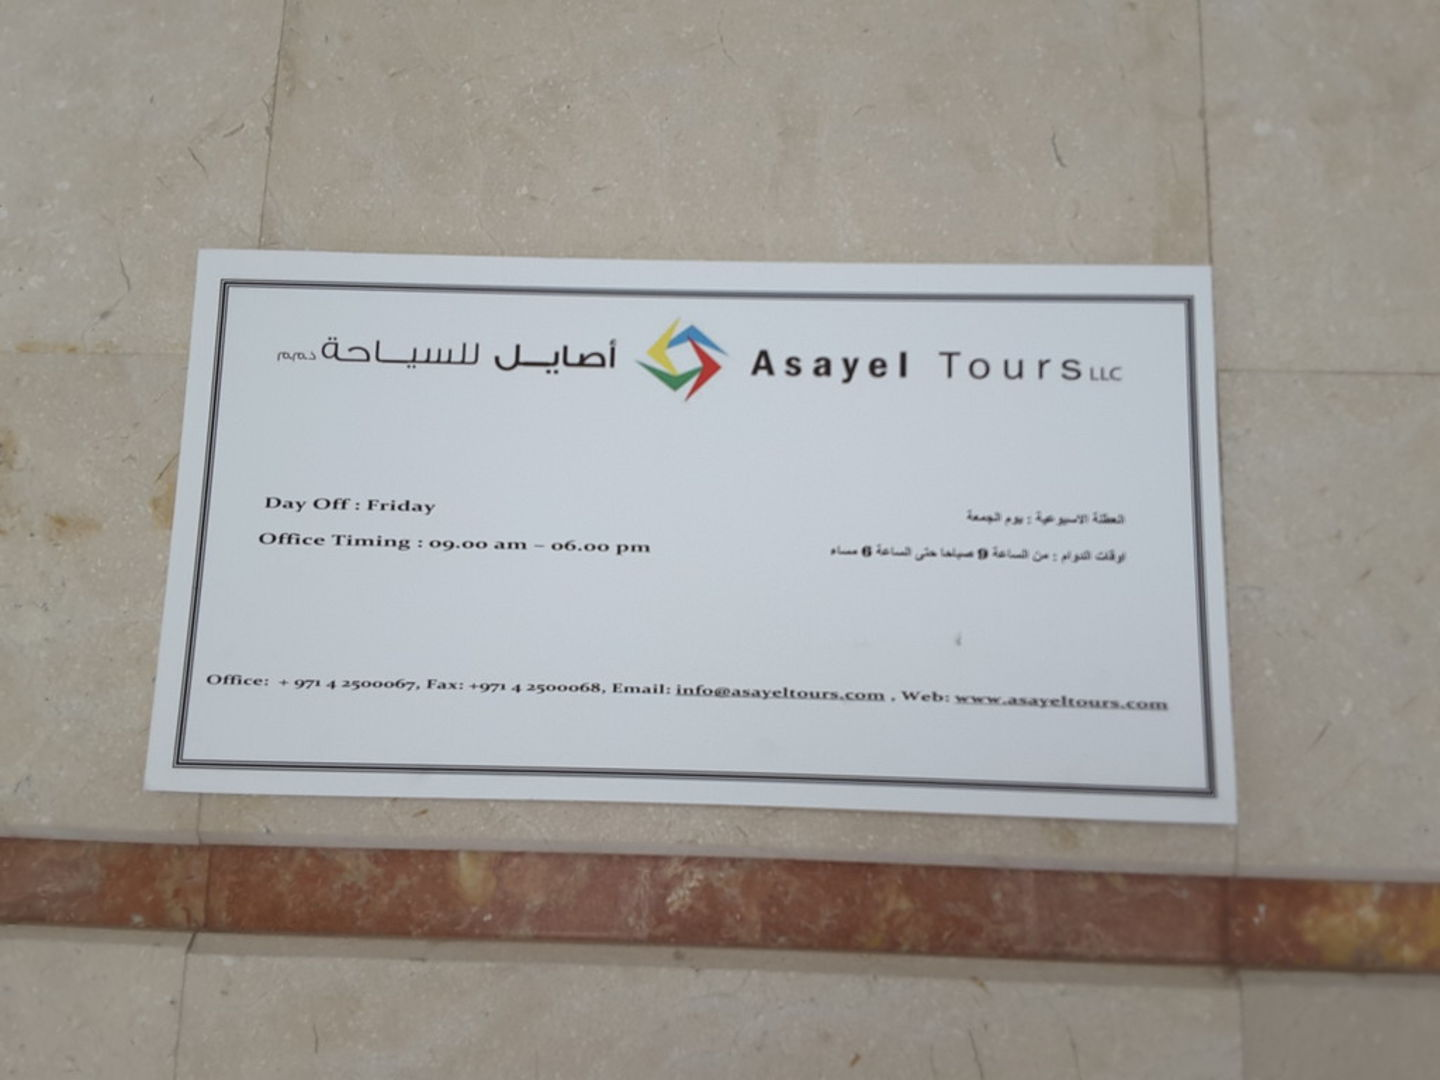 HiDubai-business-asayel-tourism-hotels-tourism-local-tours-activities-port-saeed-dubai-2